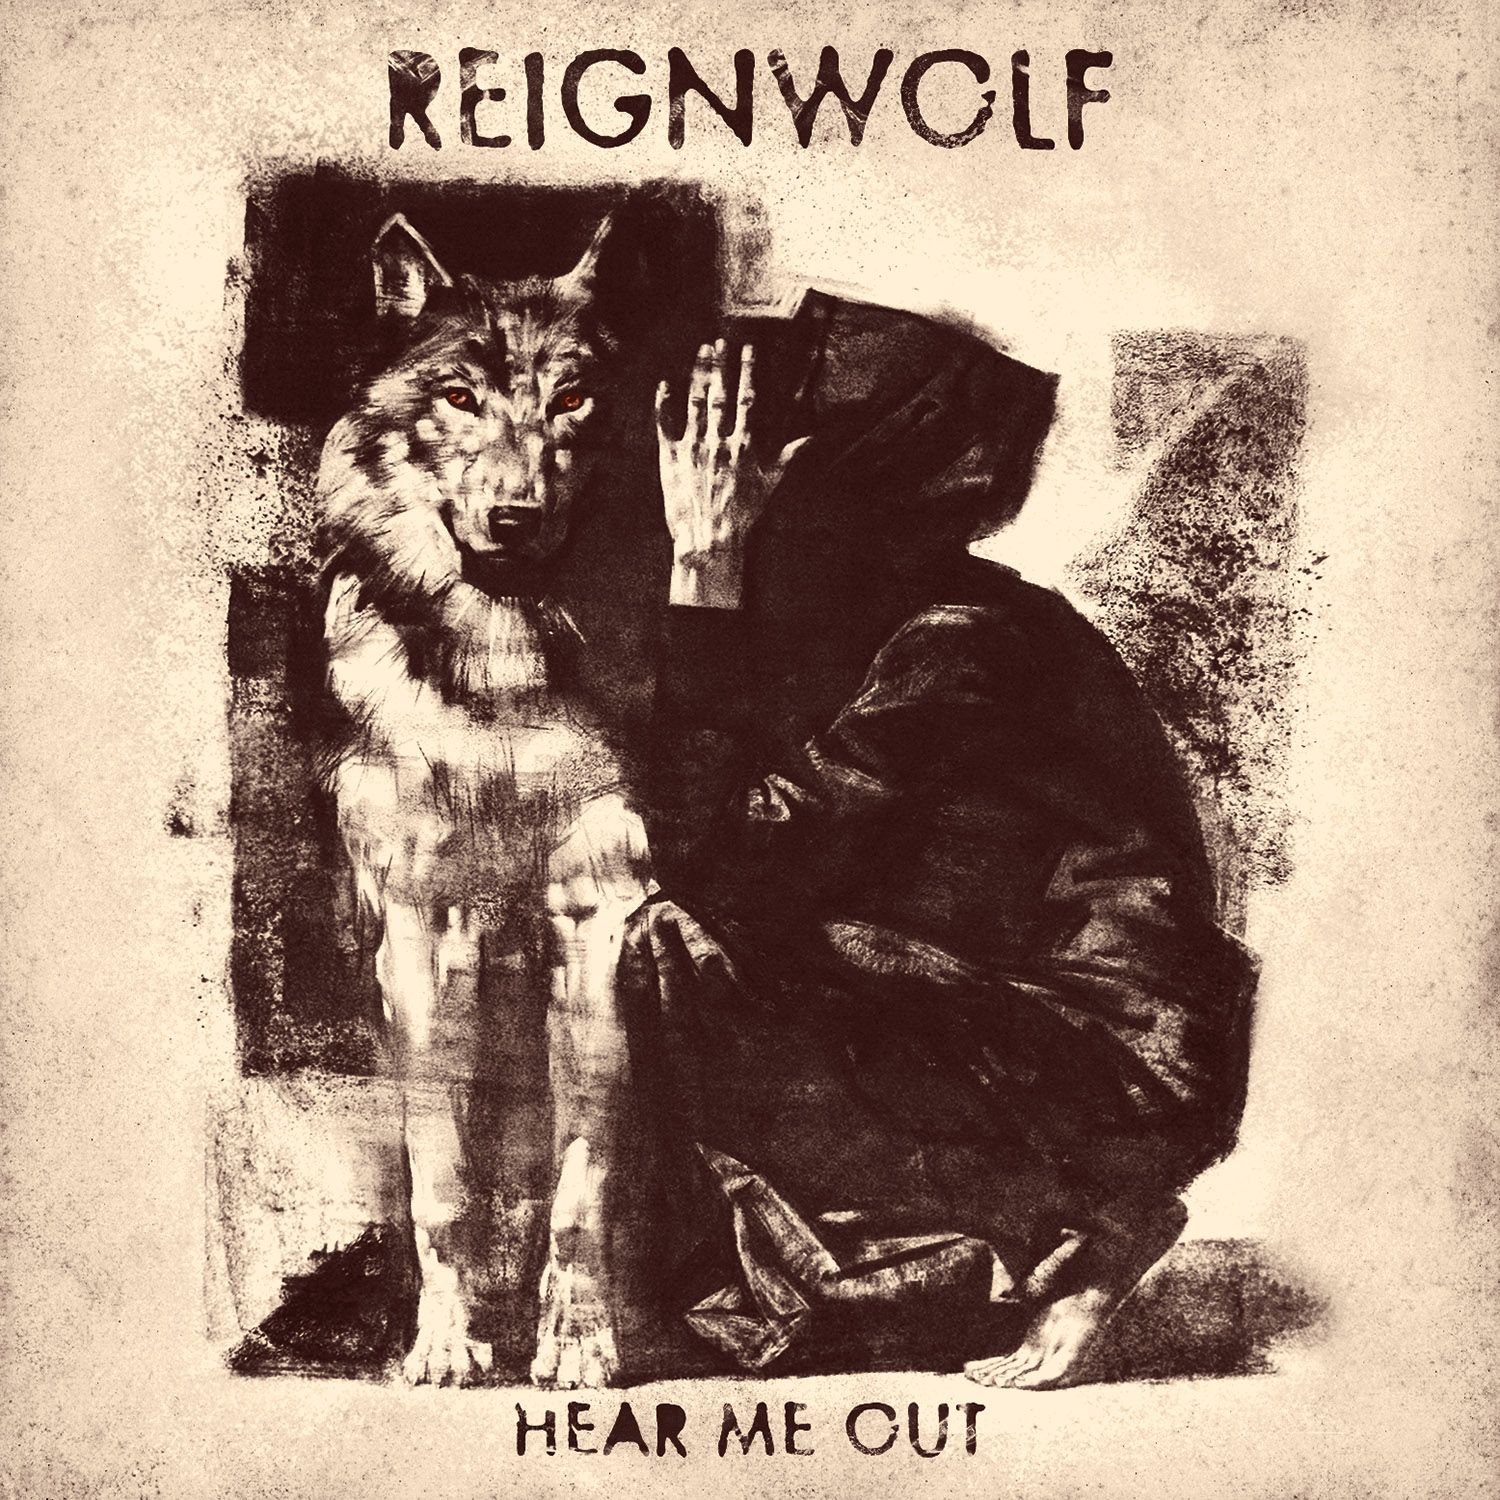 reignwolf hear me out album cover artwork release